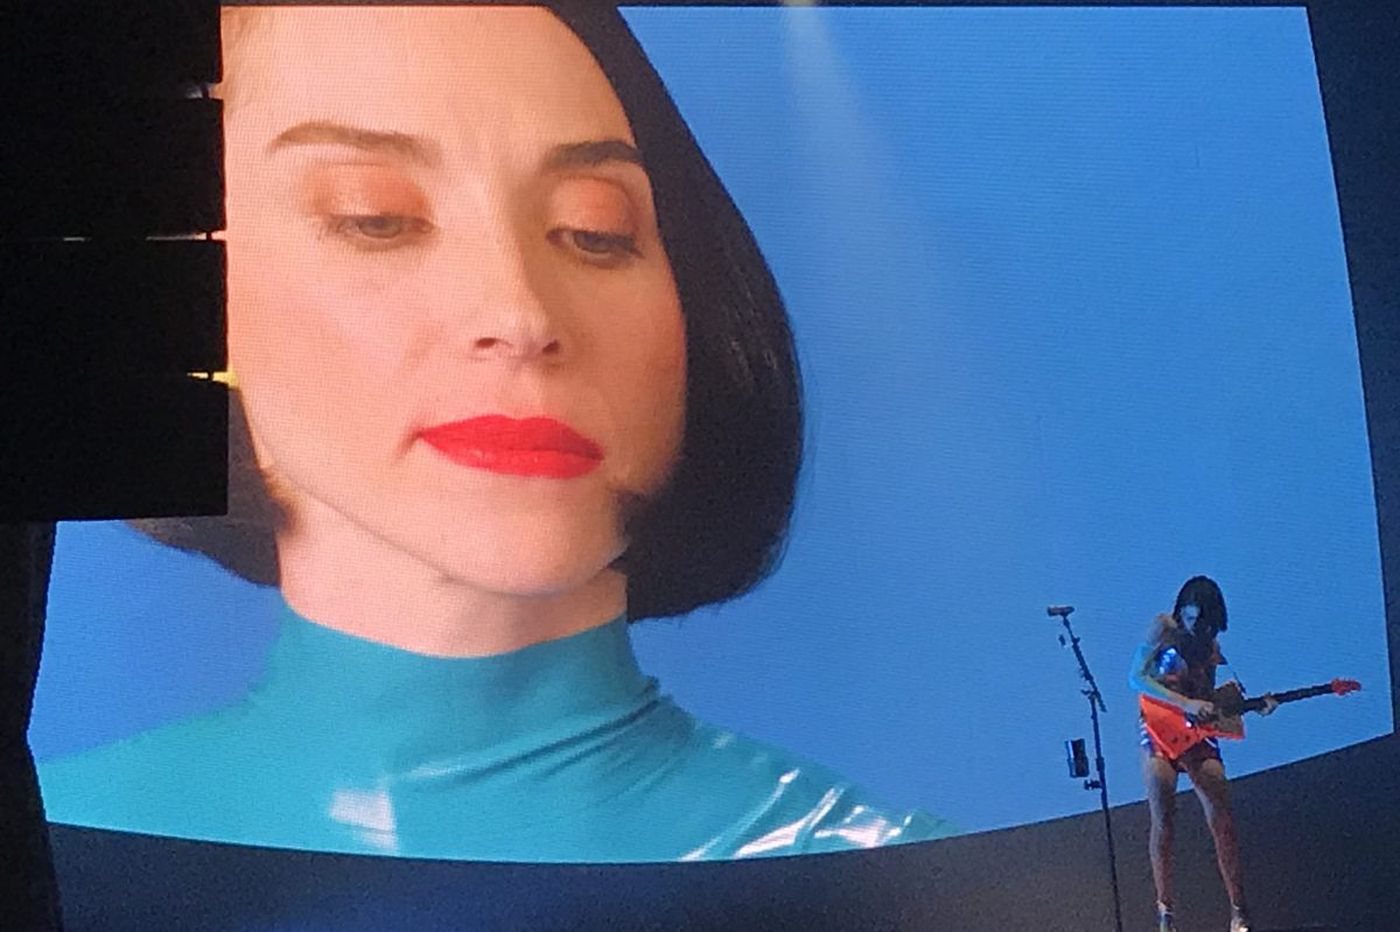 Wawa jokes and 'Masseduction': St. Vincent goes it alone at Electric Factory